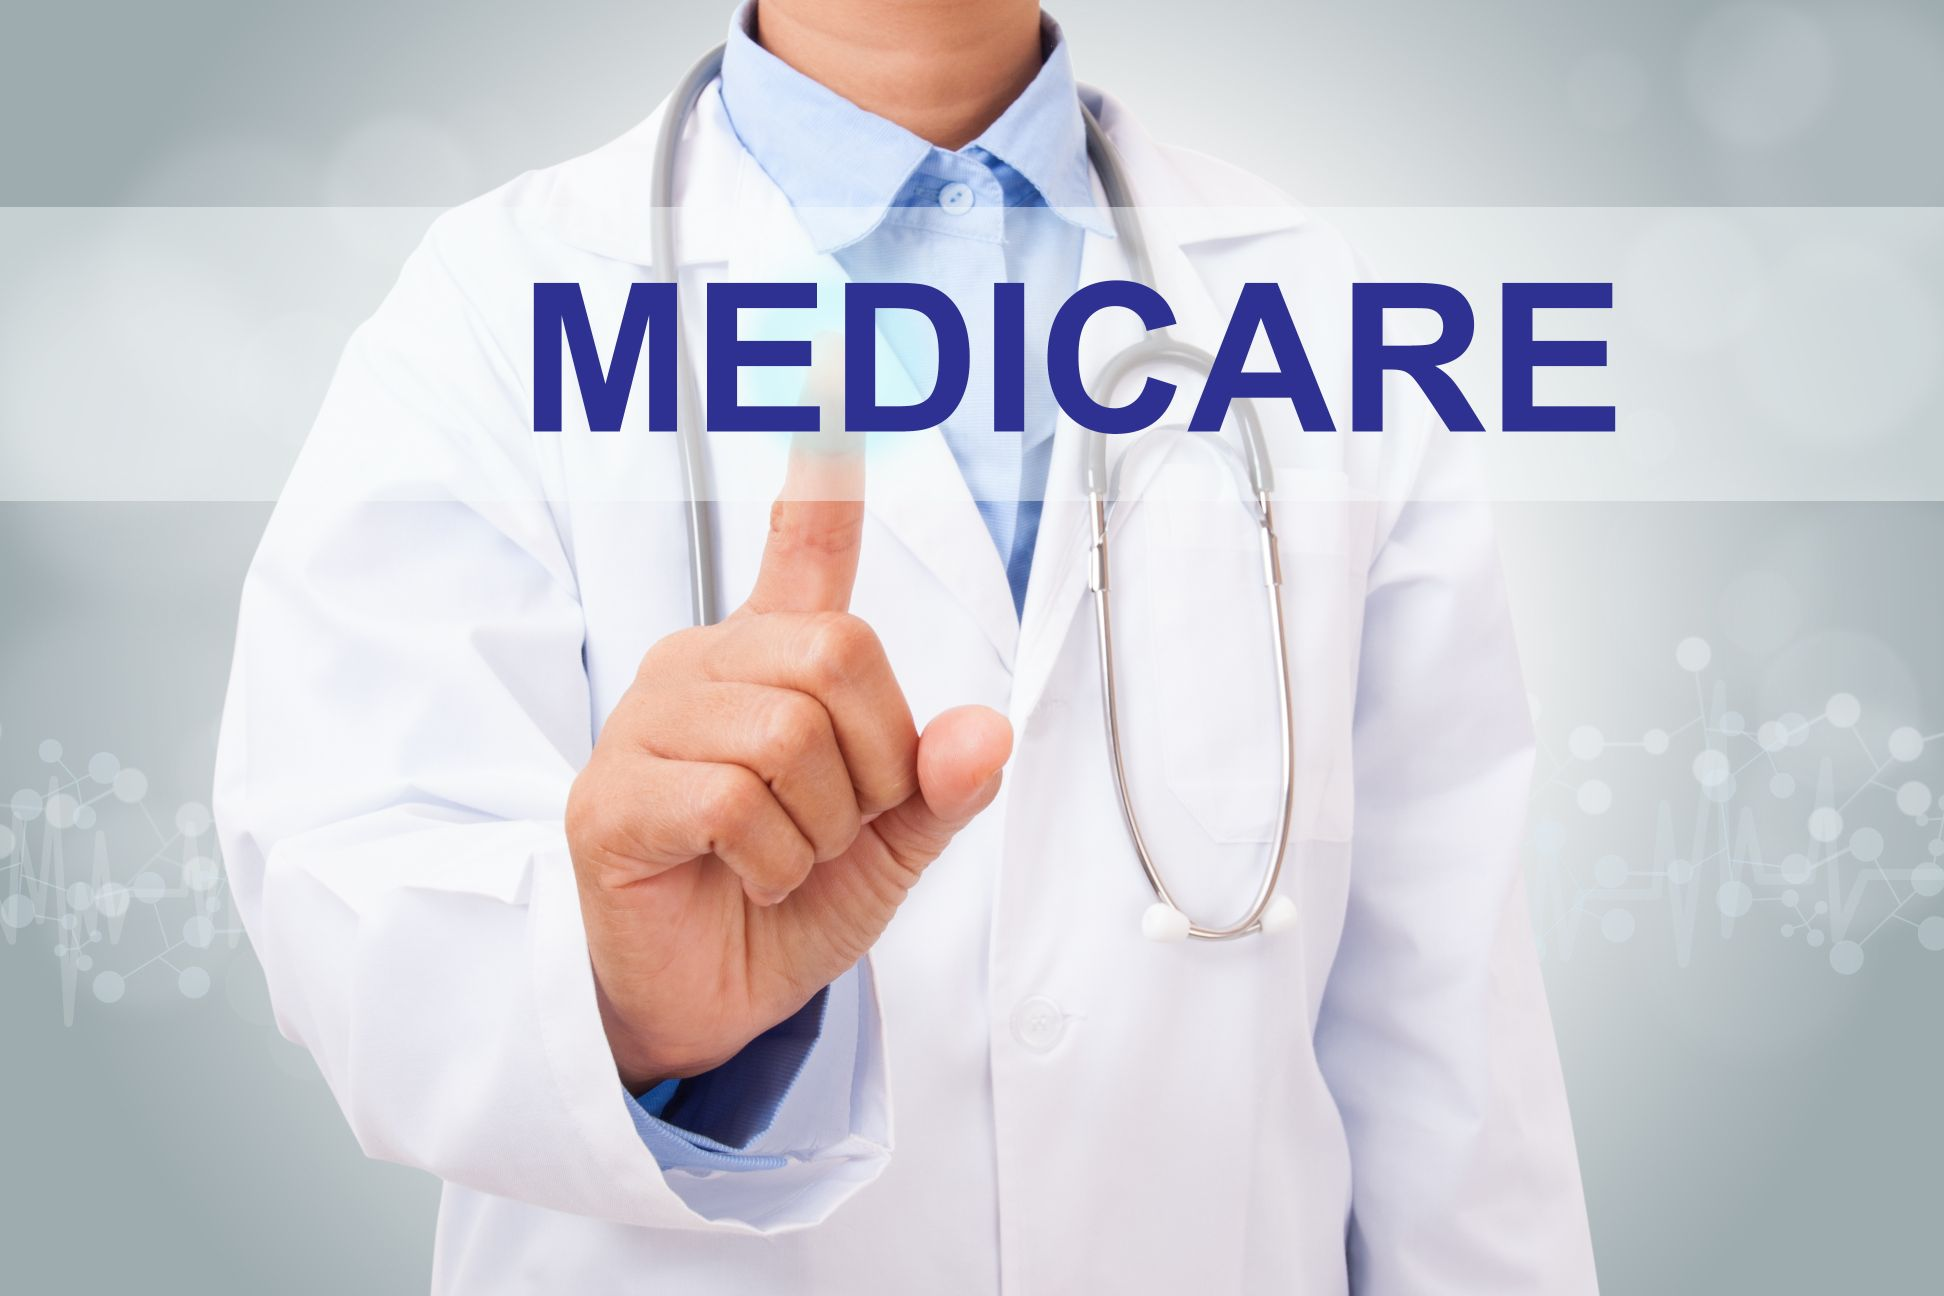 Insurance - Medicare Services